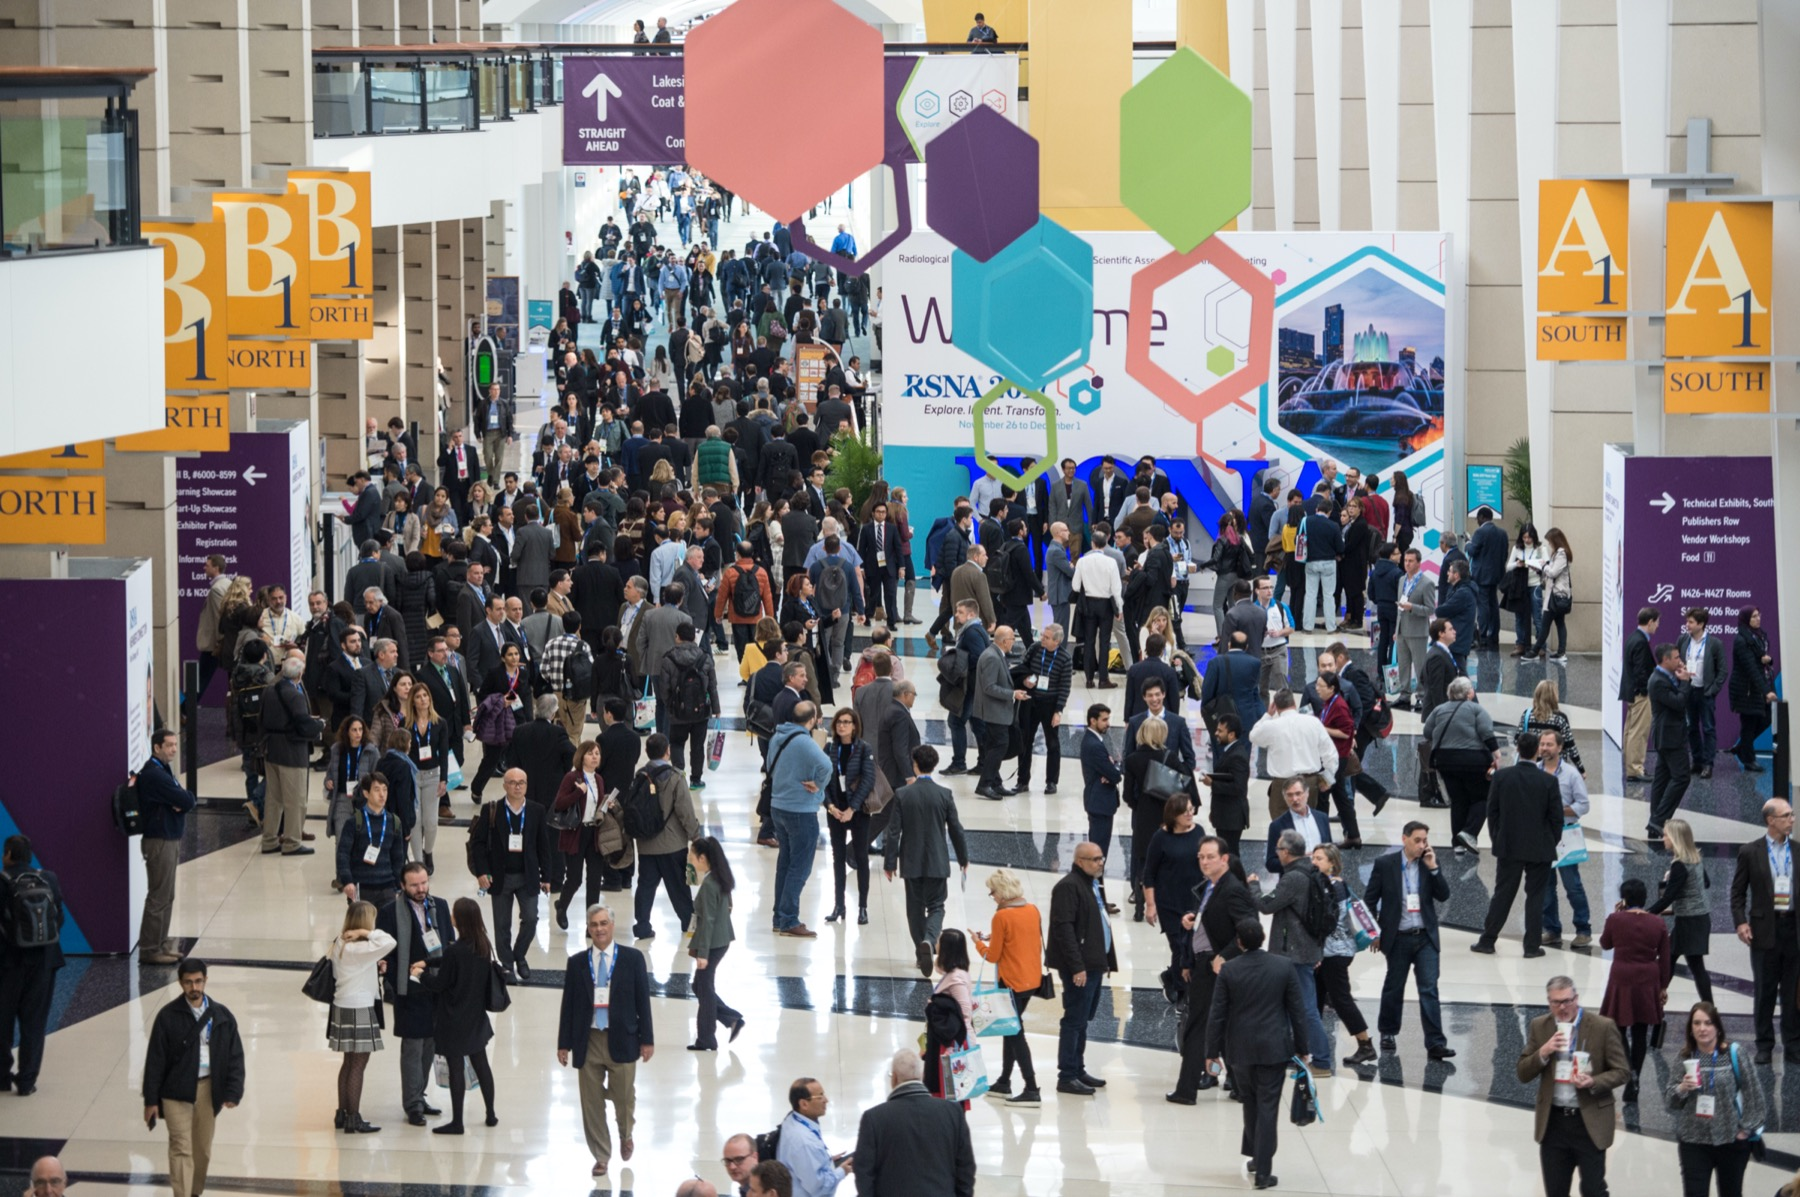 View of RSNA 2019 event at McCormick center in Chicago